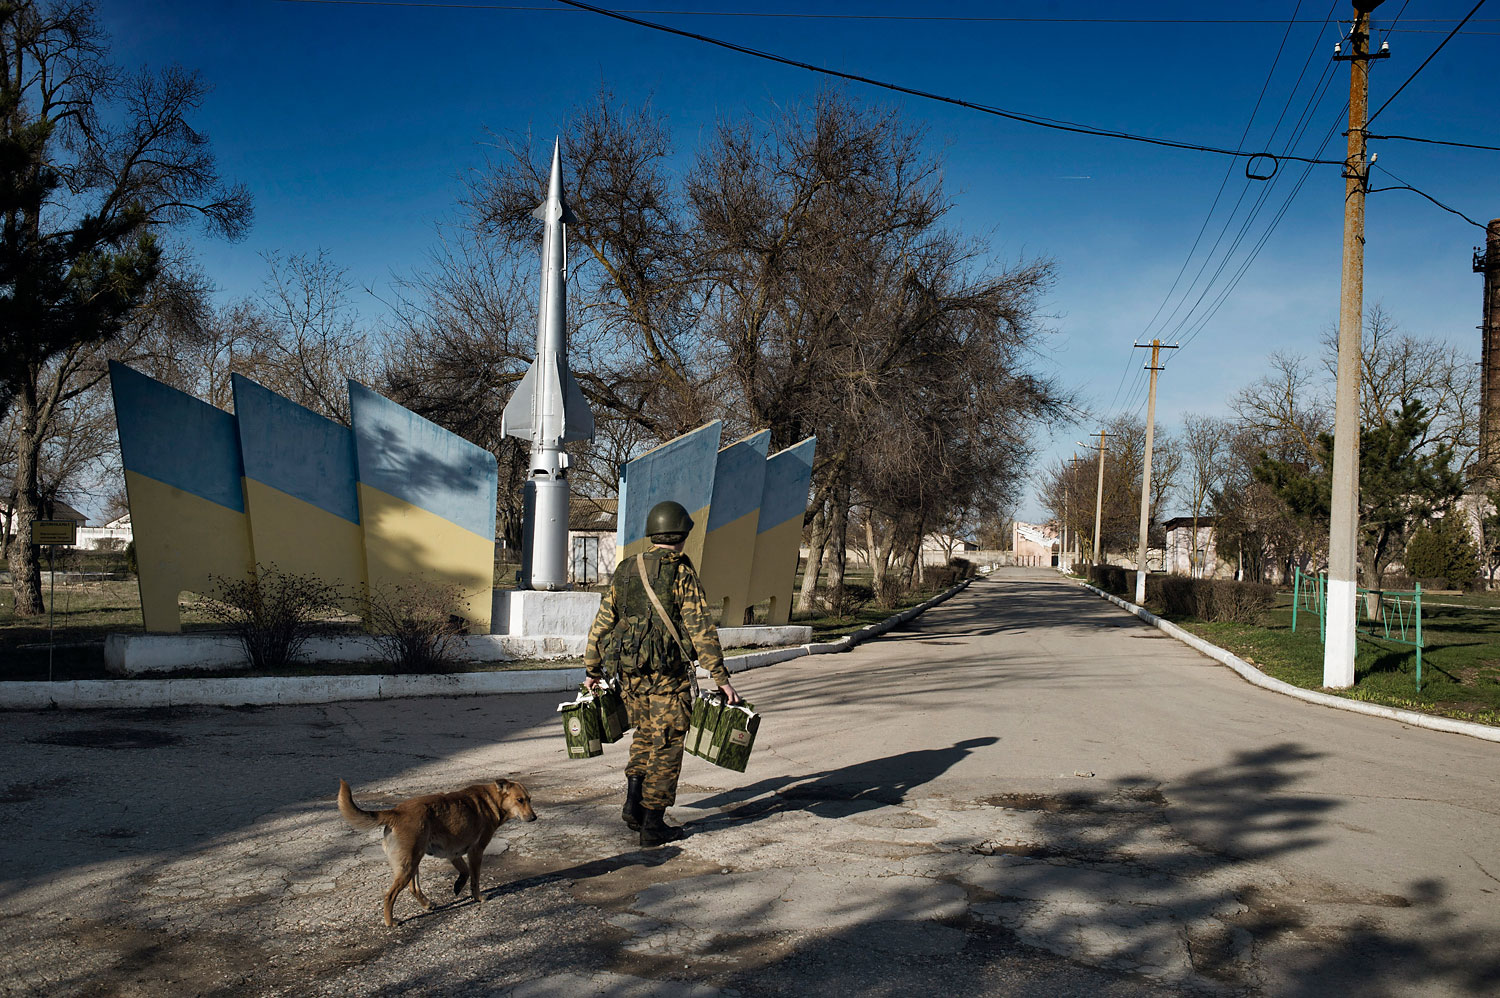 Russian troops occupy a Ukrainian military base in the Crimean town of Yevpatori, March 5, 2014.